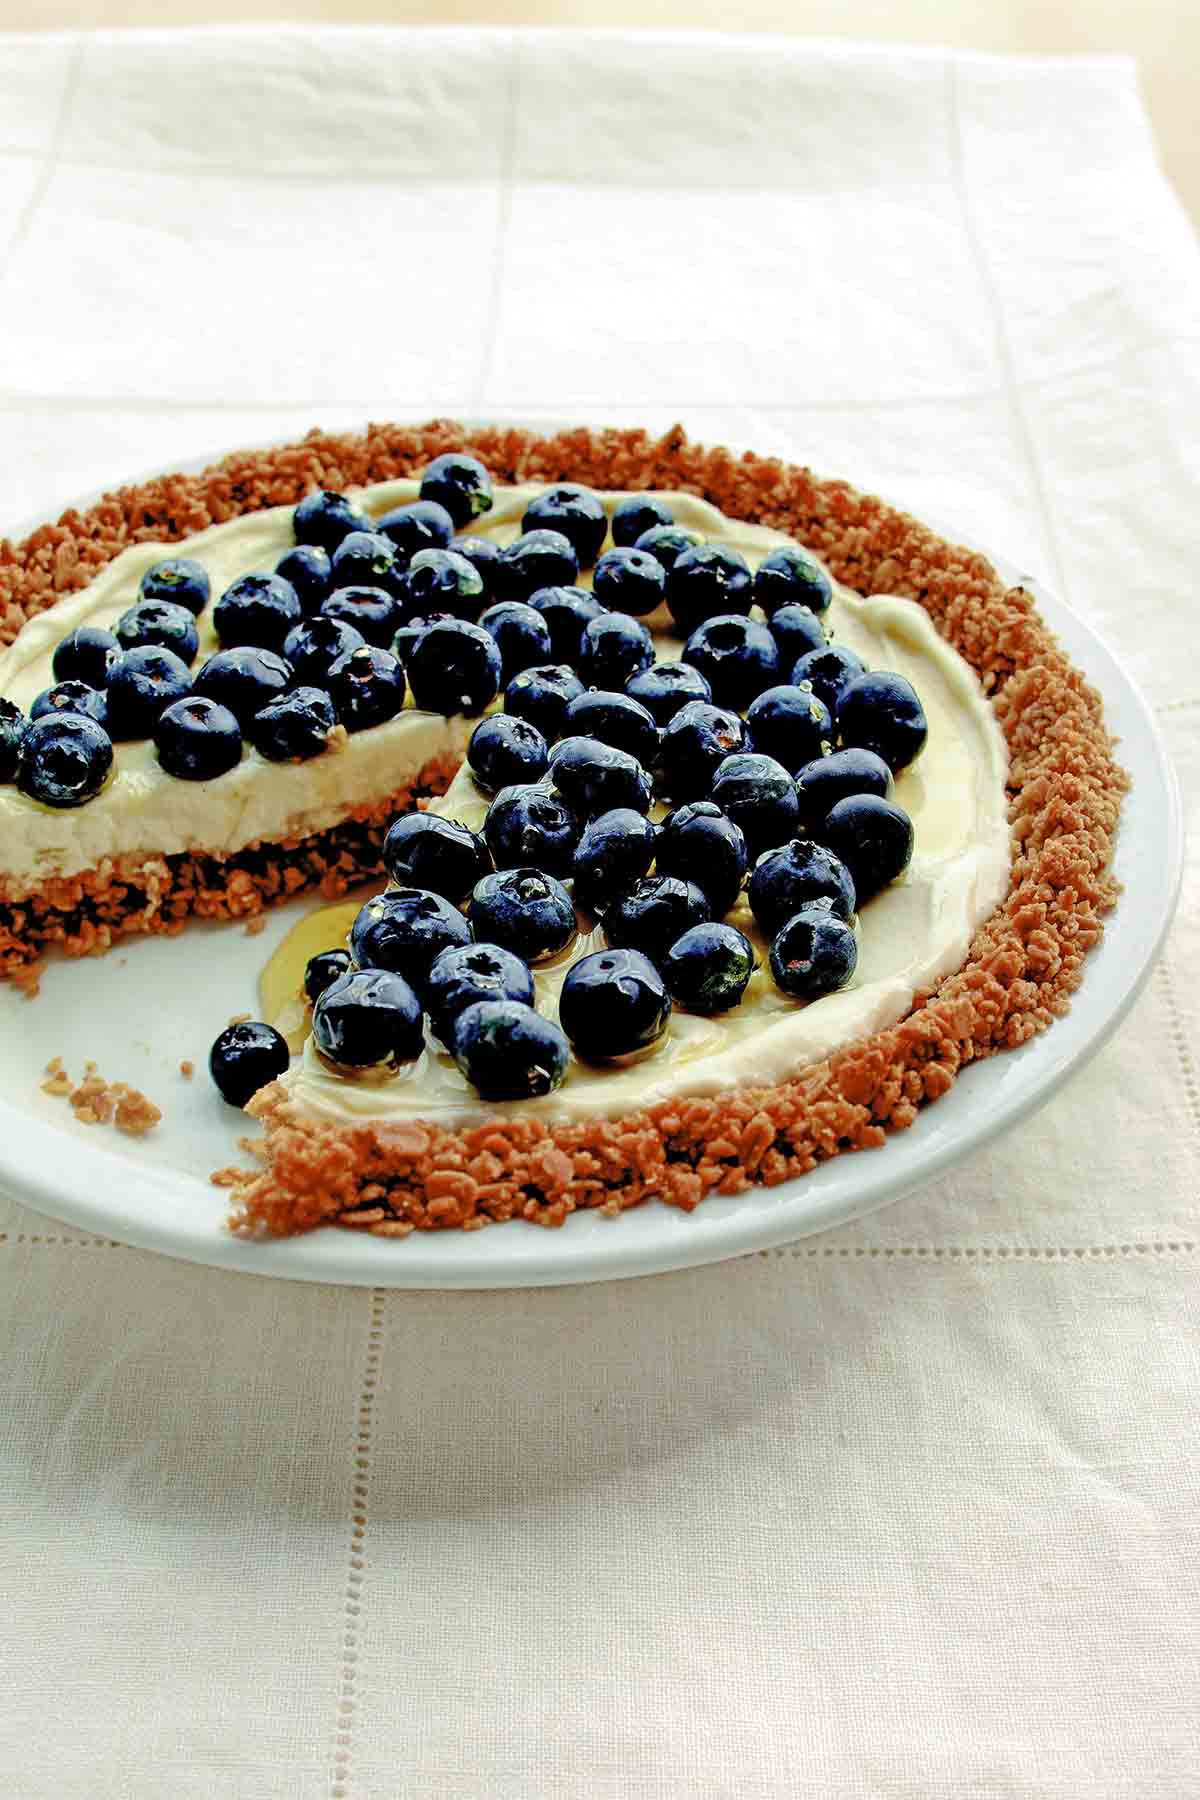 A blueberry pie with granola crust and blueberries on top with one slice missing.